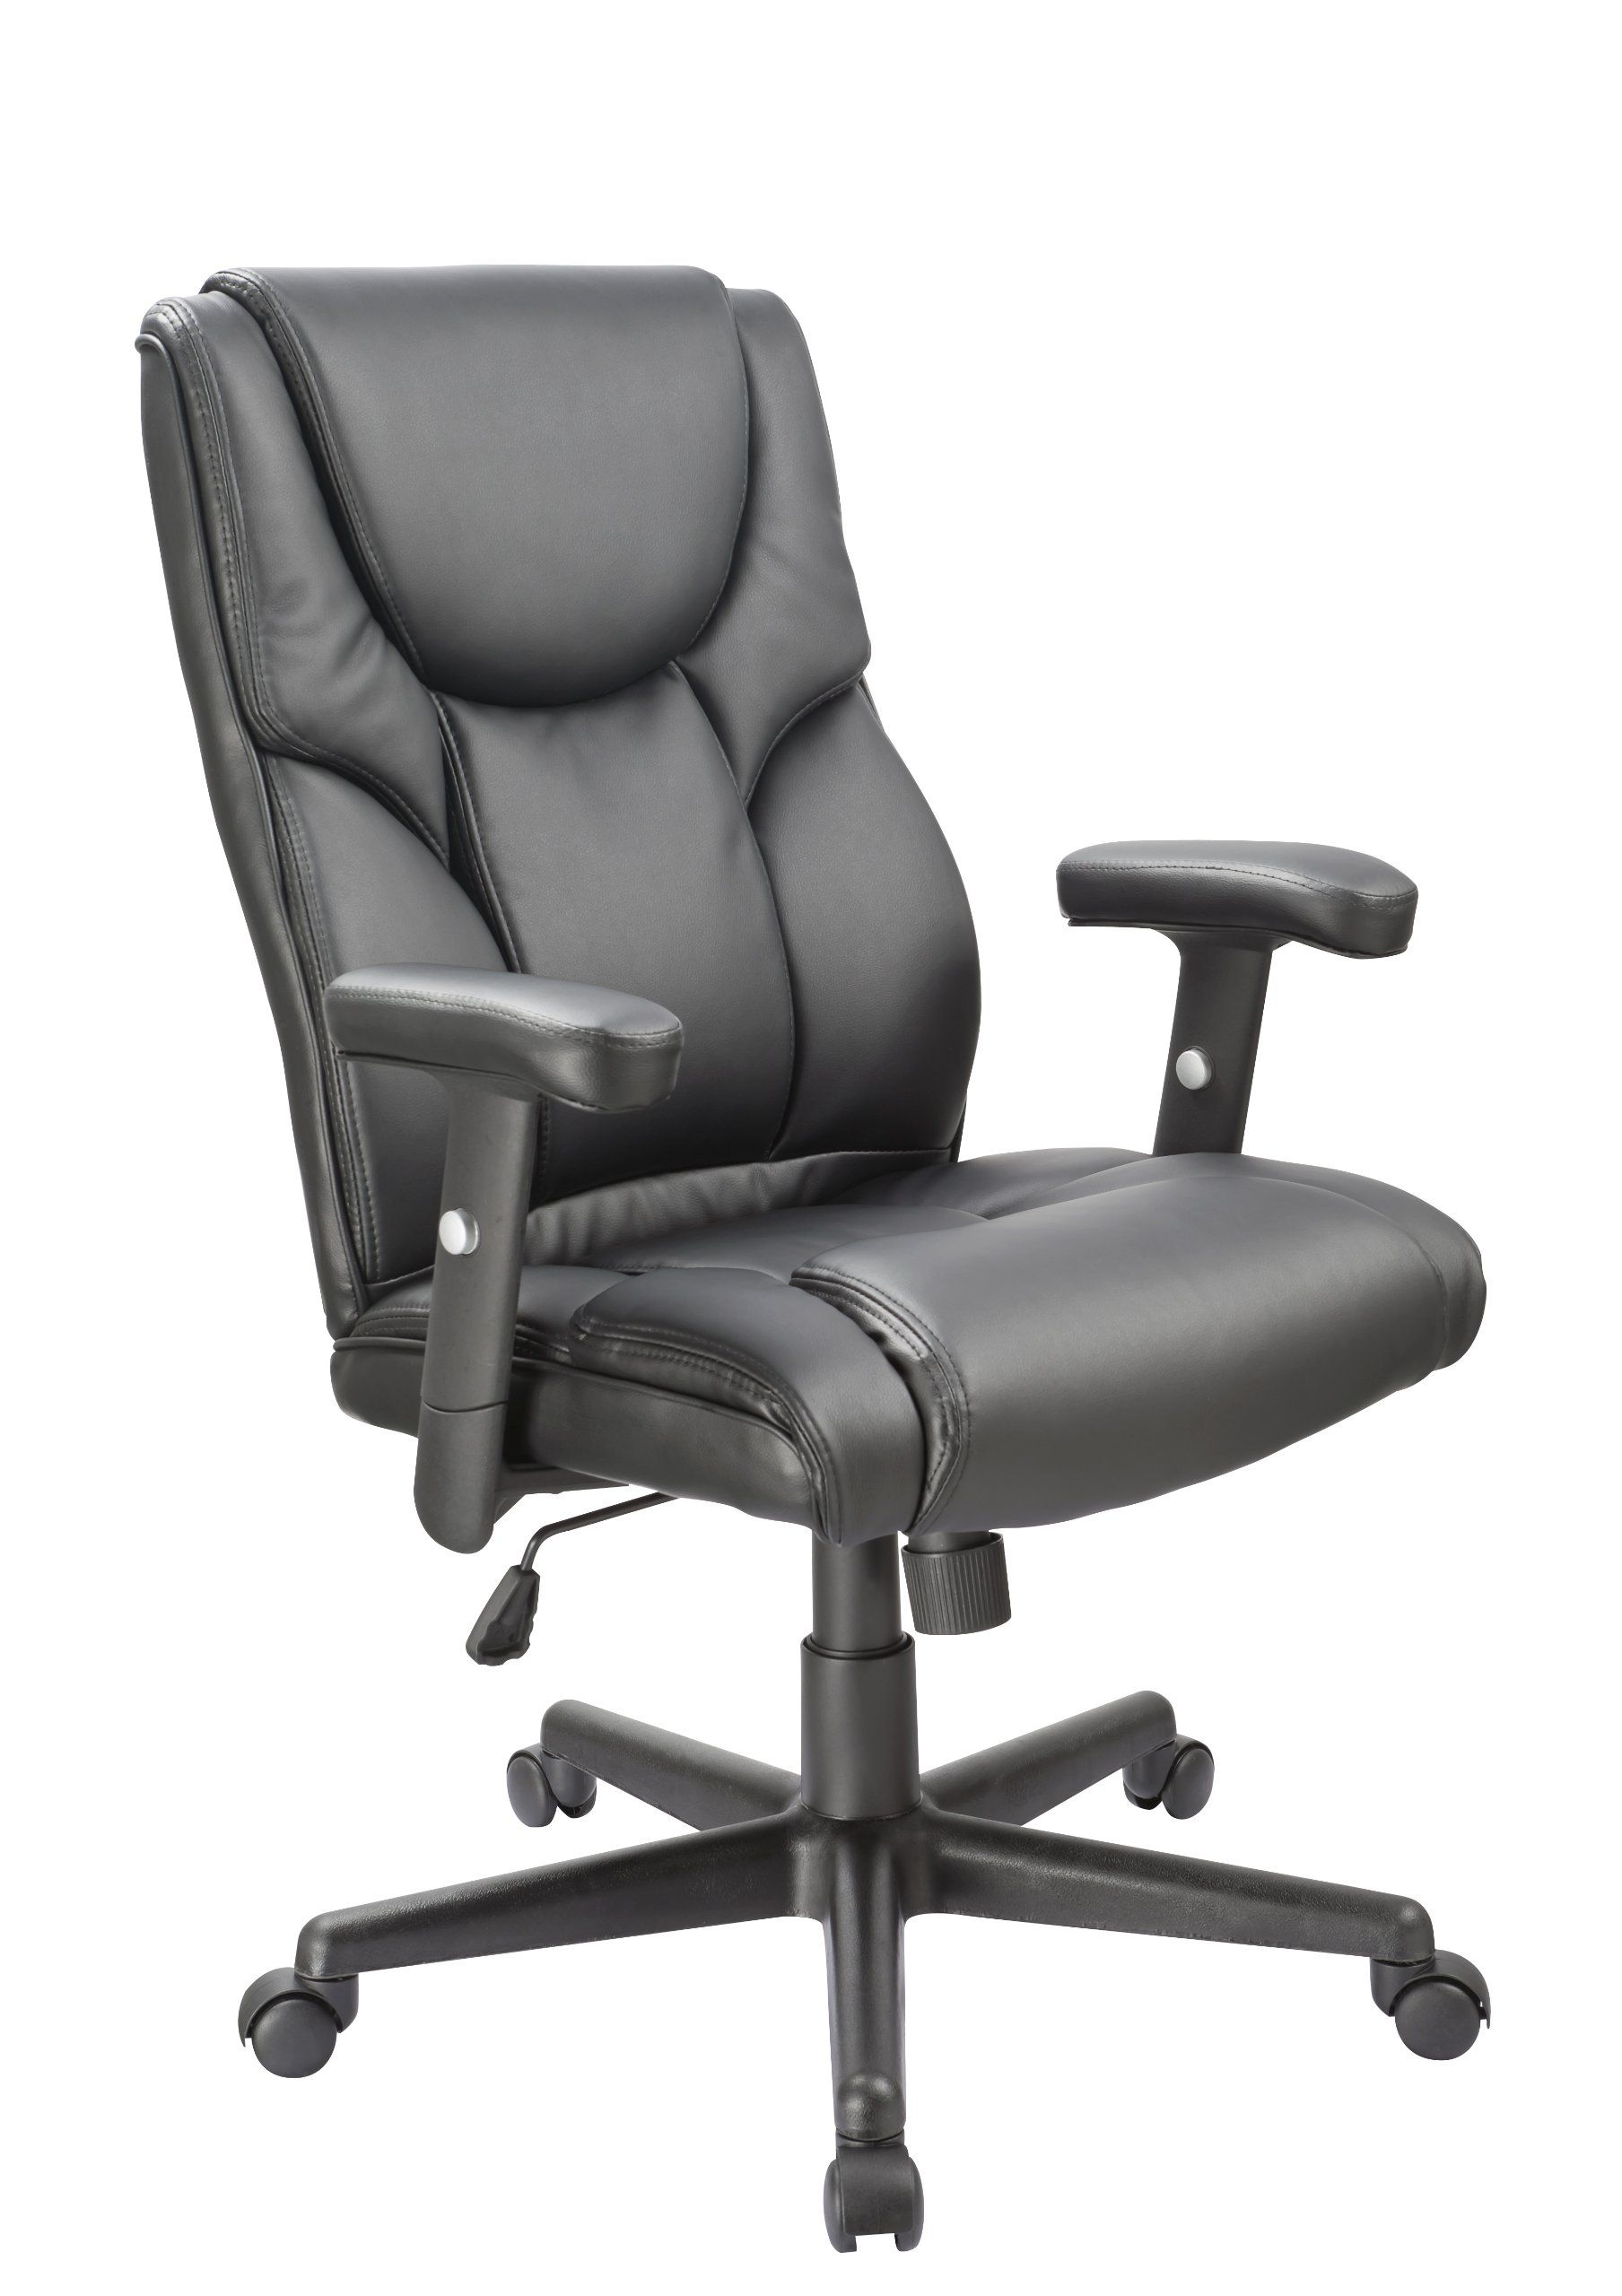 office factor executive office chair high back lumbar support